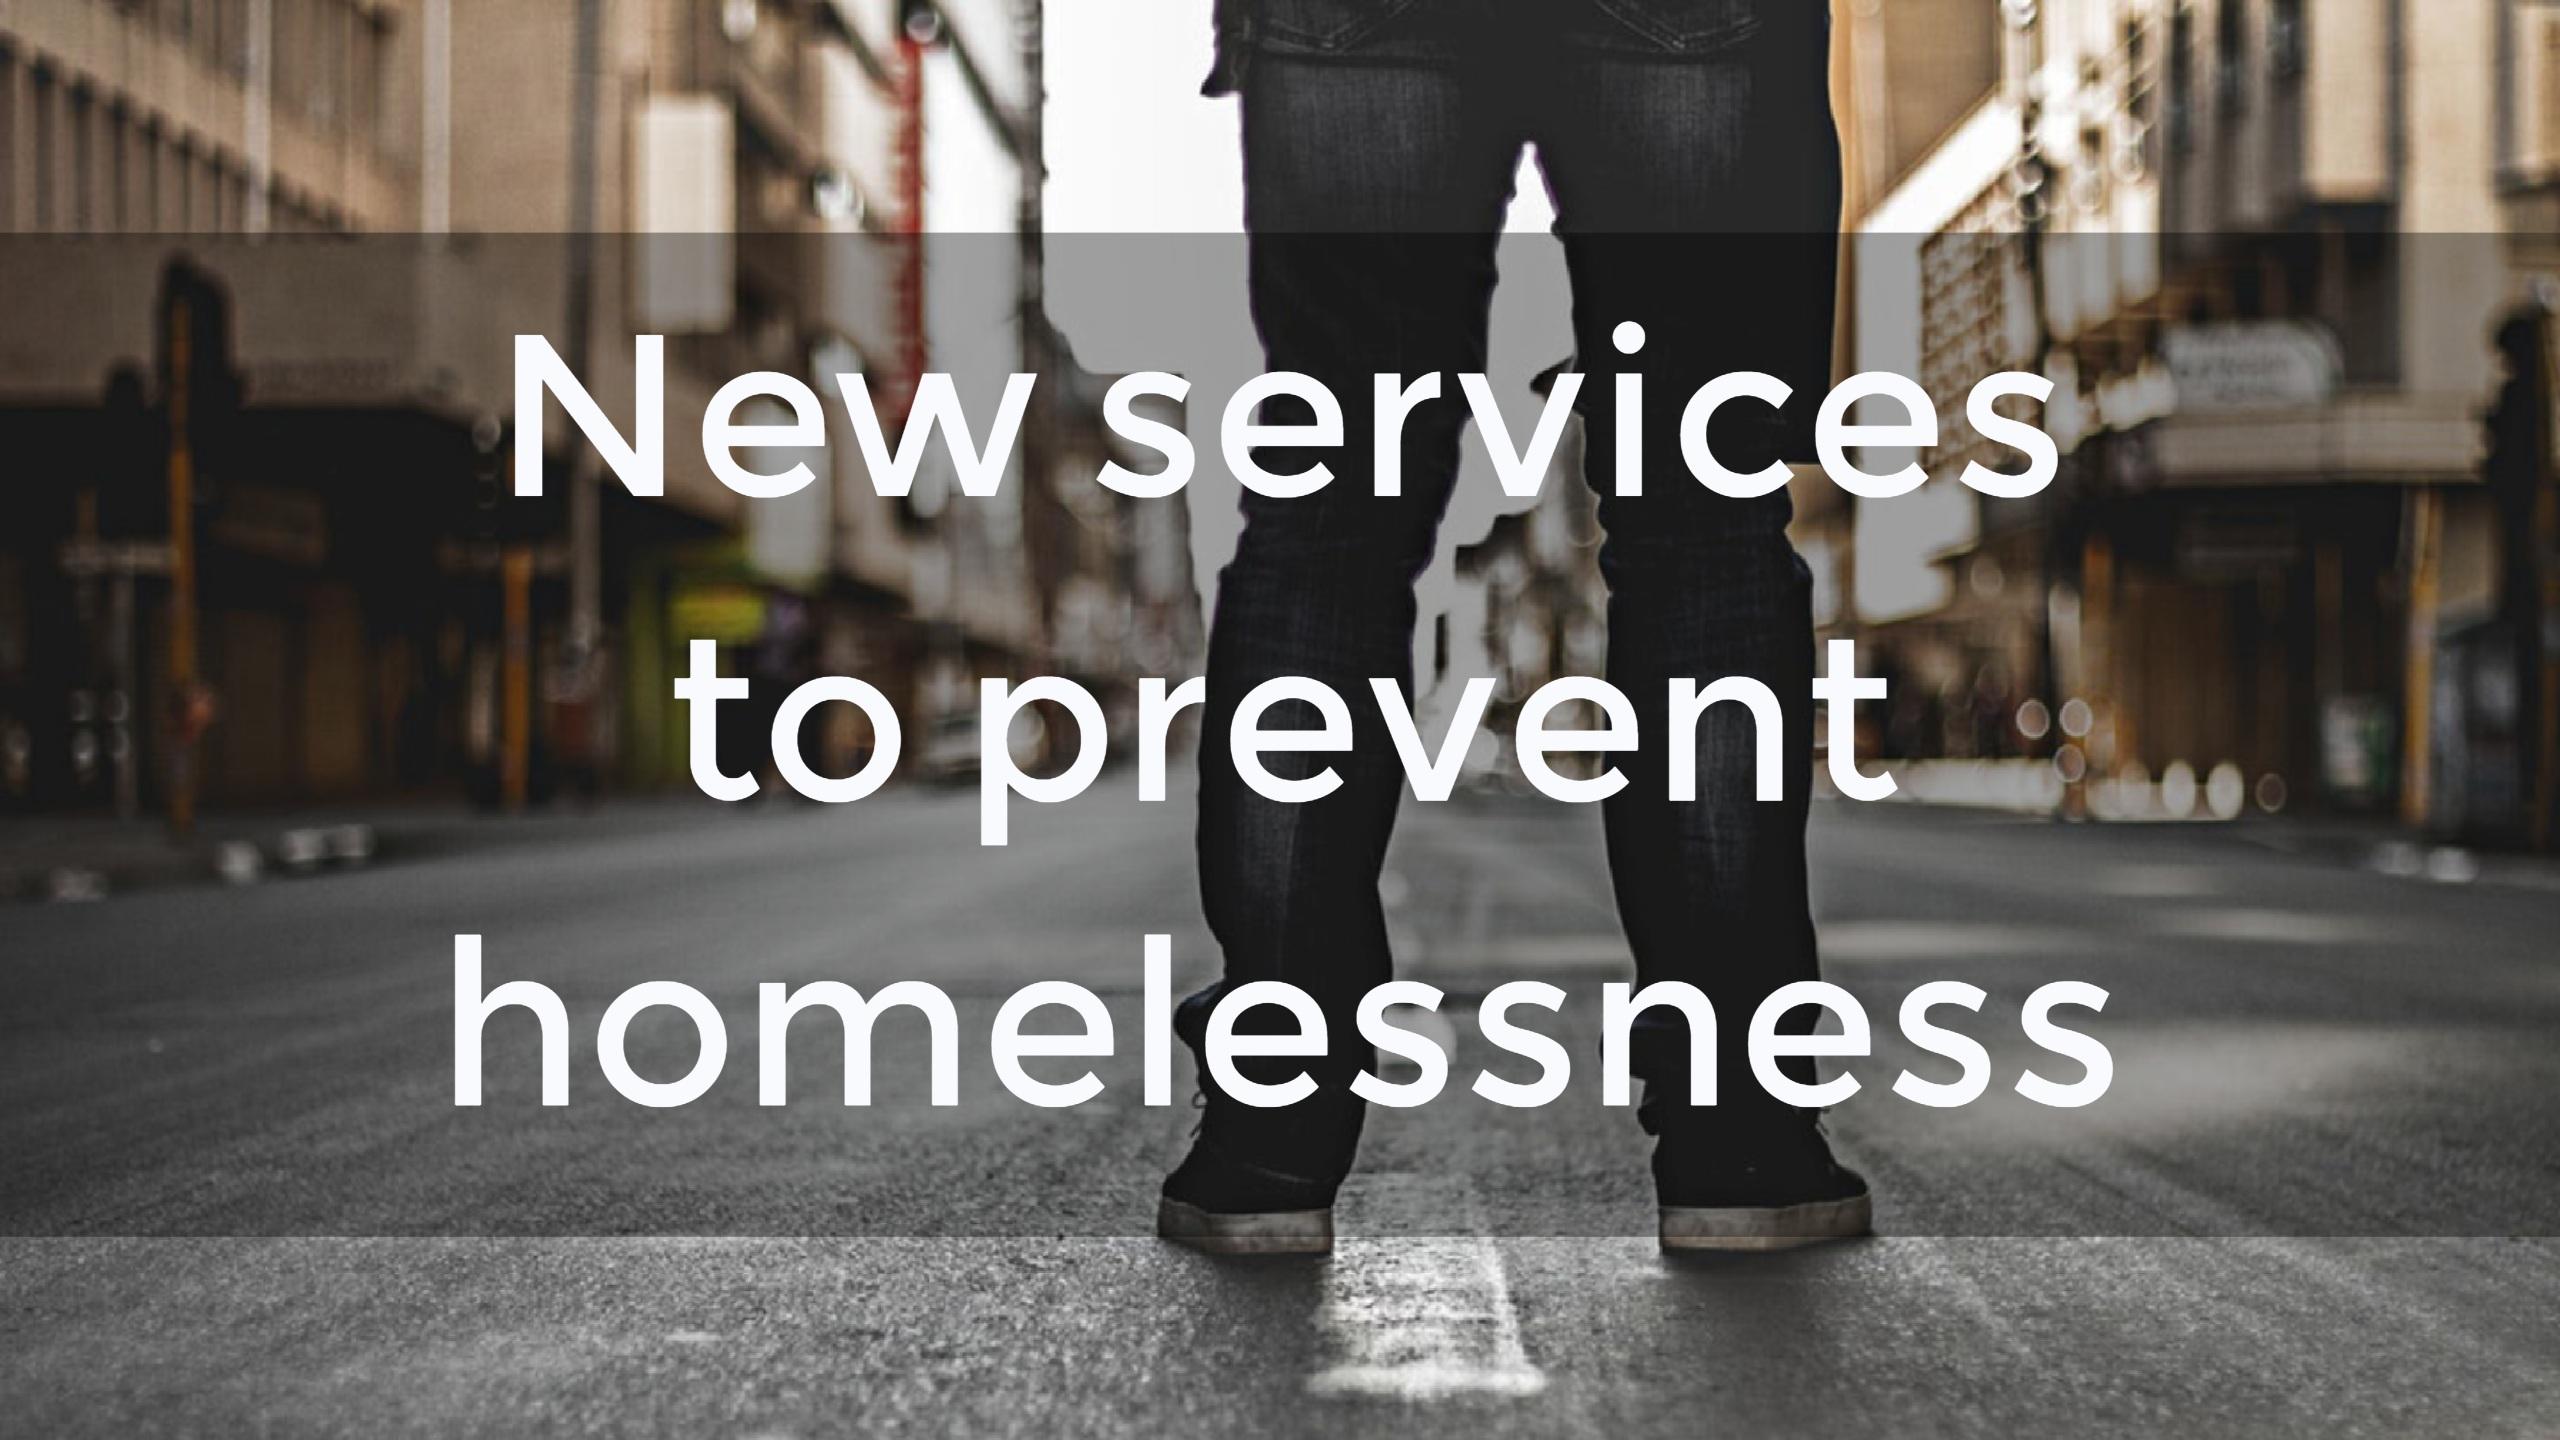 New services to prevent homelessness - over a photo of a man's legs standing in a high street